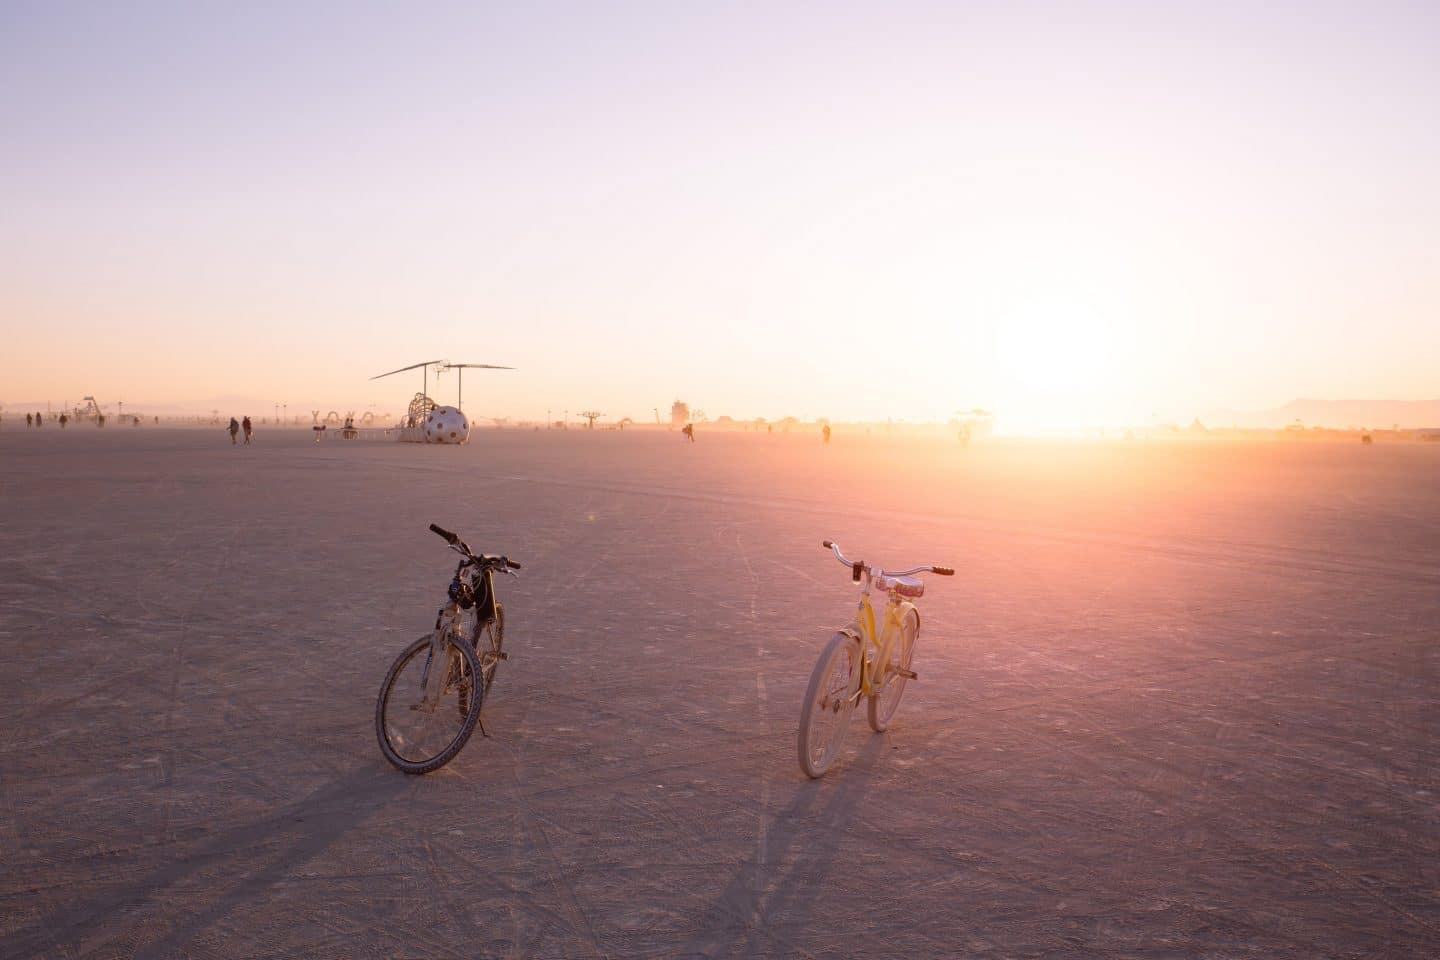 Burning Man 2020 Is Canceled, But You Can Still Journey To The 'Virtual Black Rock City'